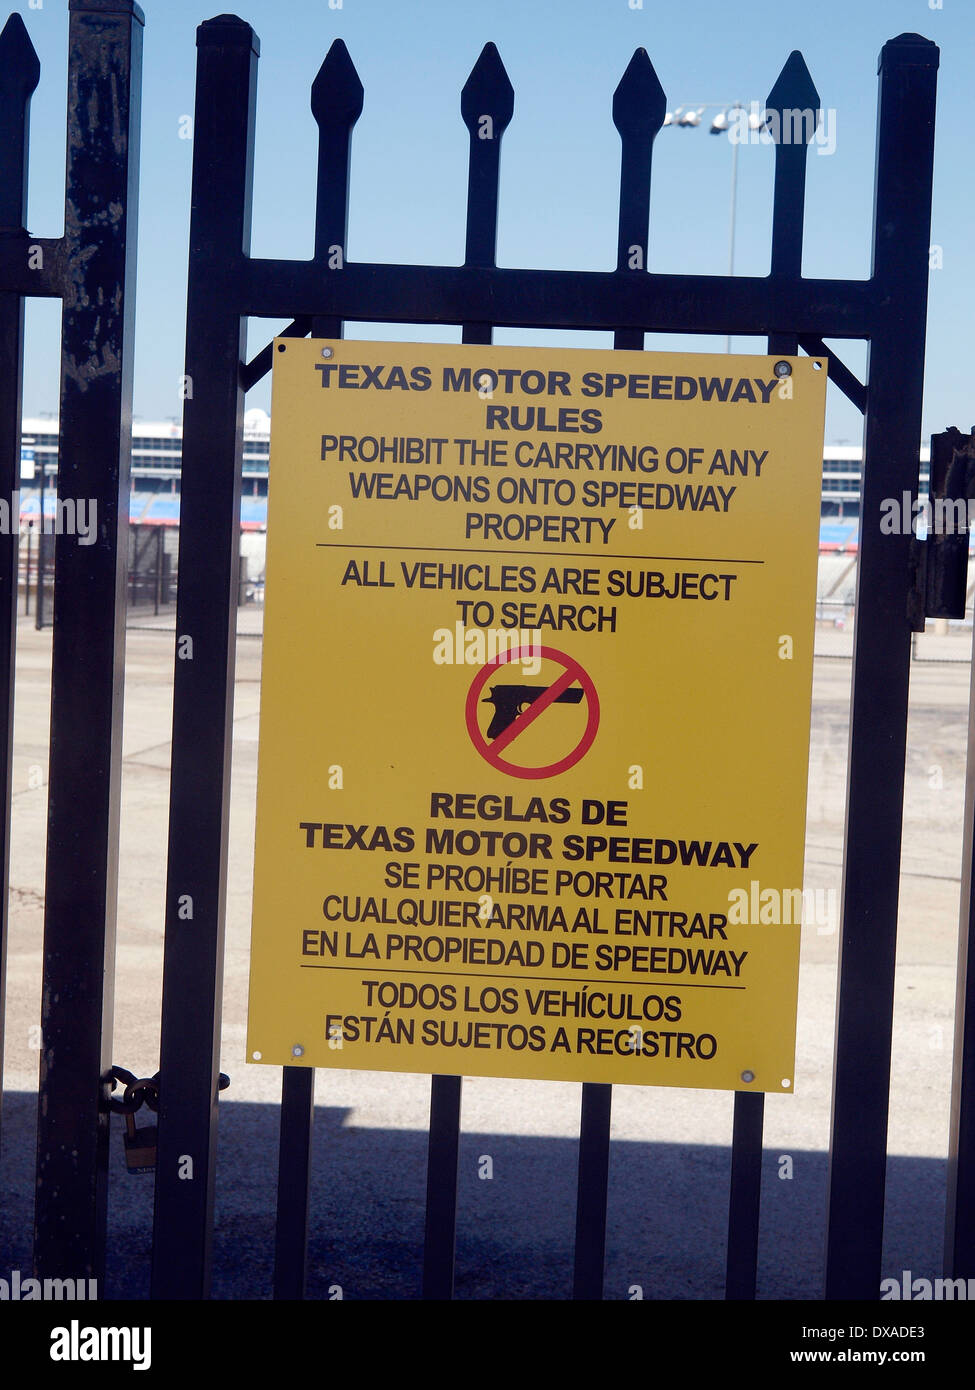 Ft Worth, TX - Even though the National Rifle Association is a sponsor, the Texas Motor Speedway prohibits weapons. - Stock Image